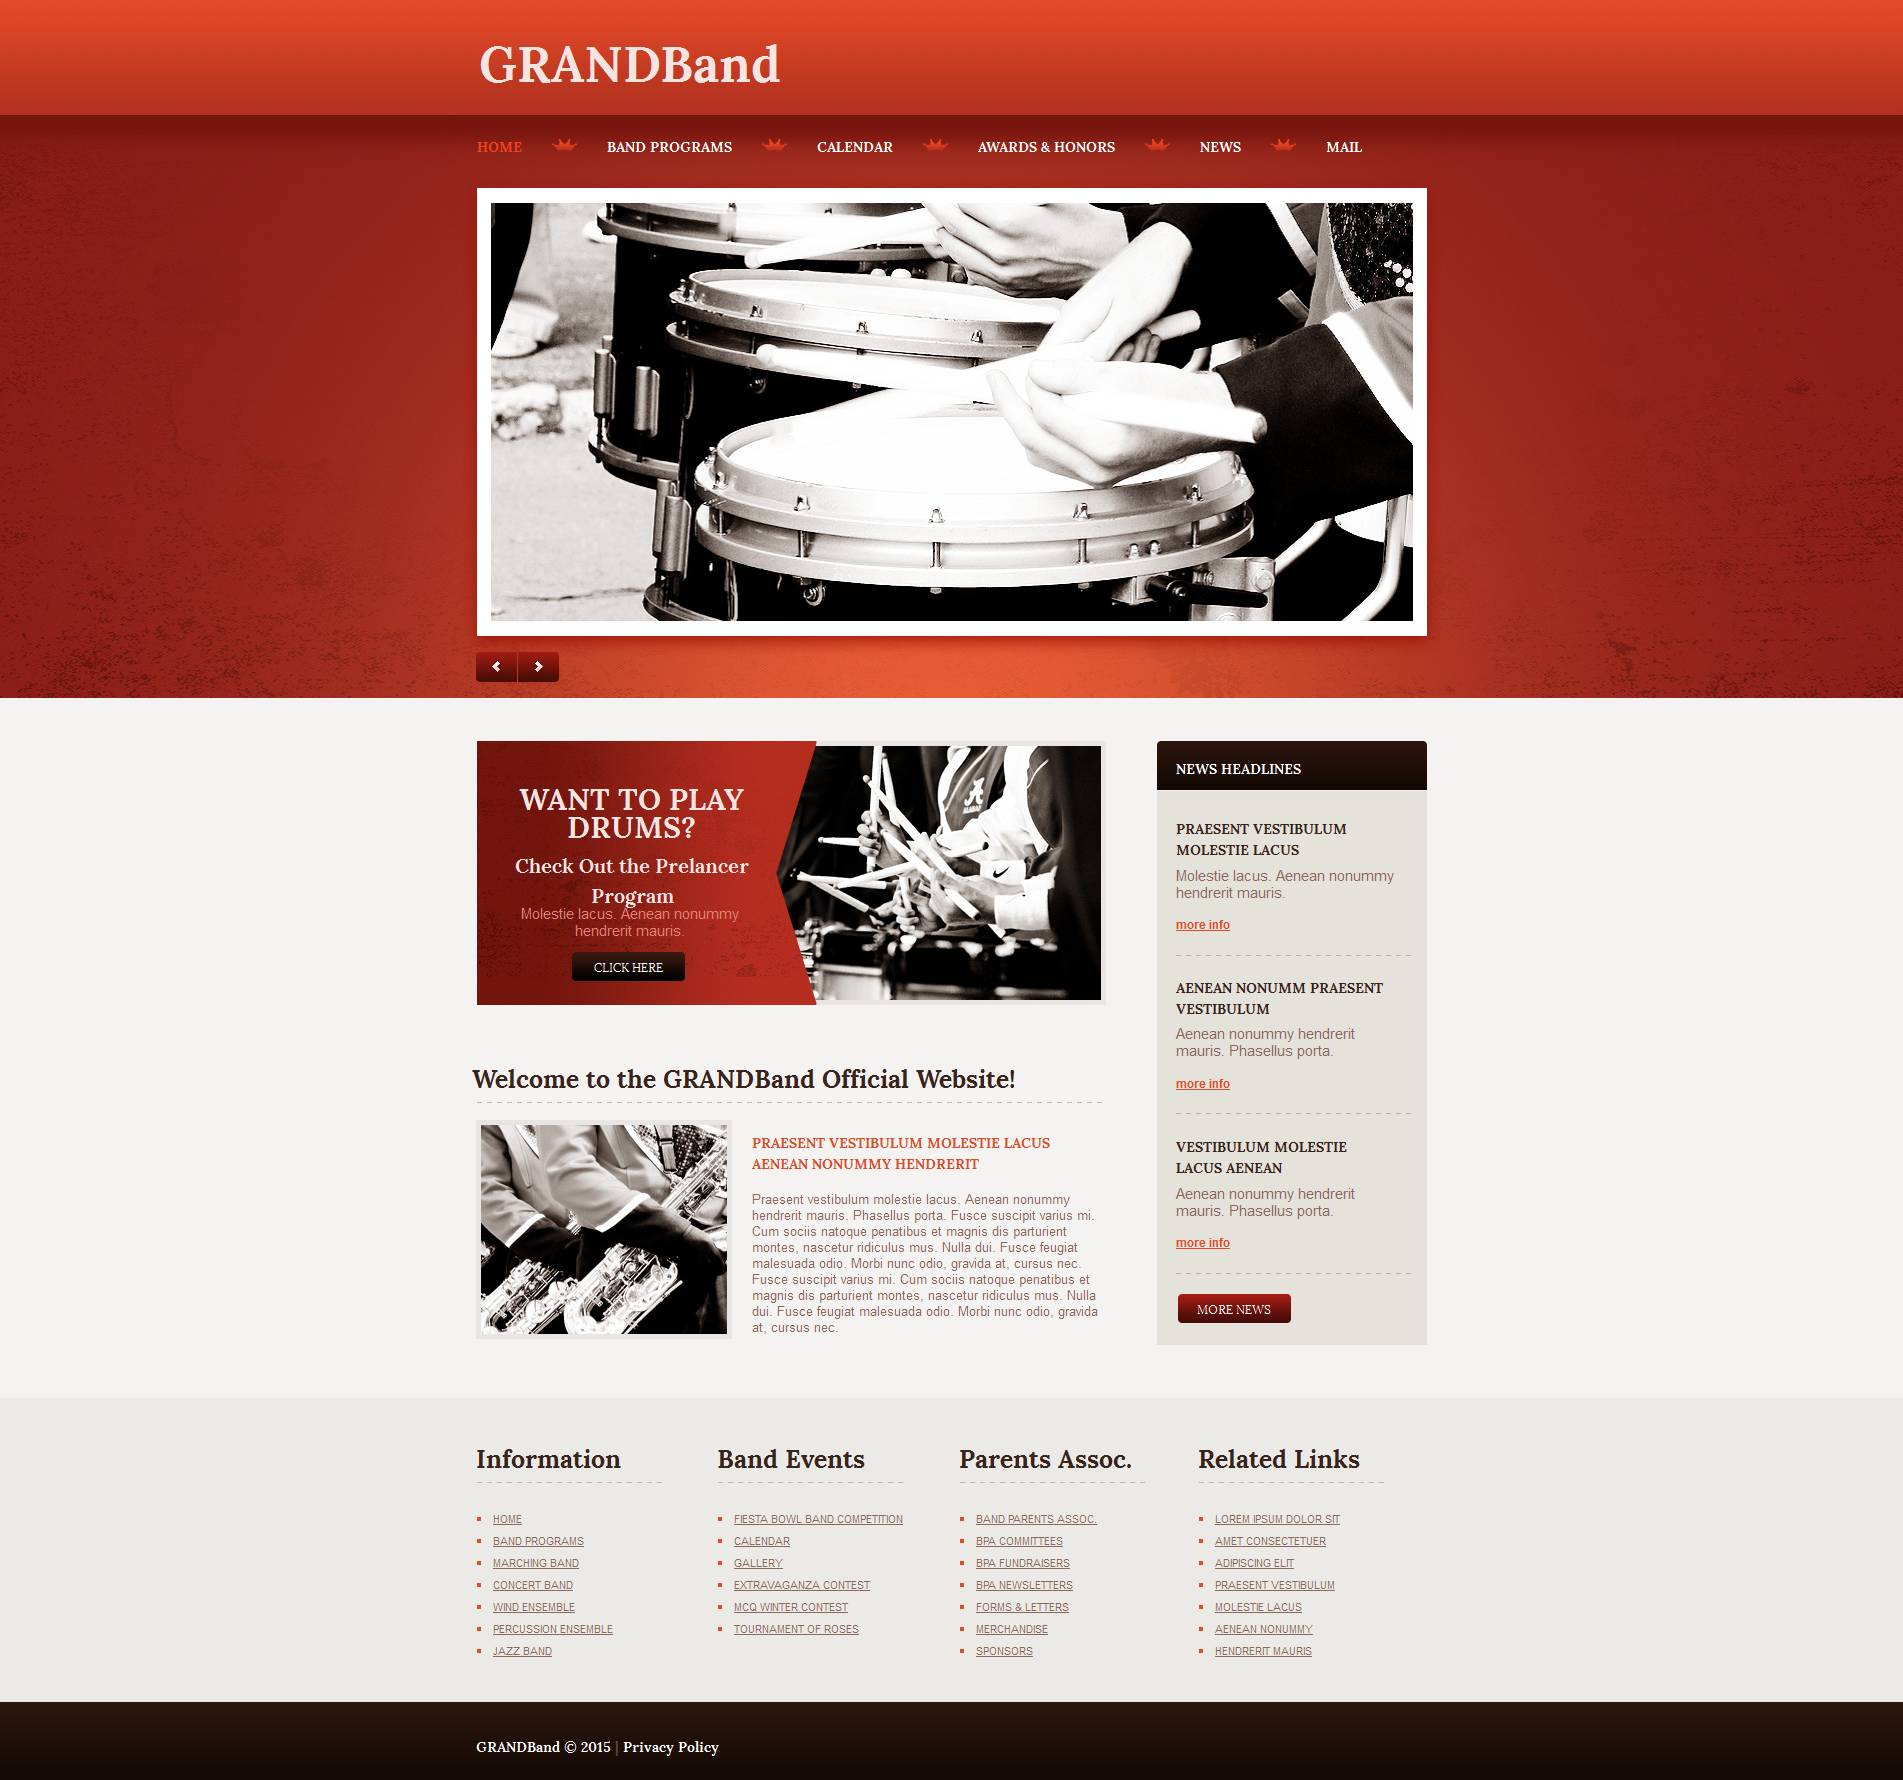 The Grand Music Band Moto CMS HTML Design 53621, one of the best Moto CMS HTML templates of its kind (music), also known as grand music band Moto CMS HTML template, biography Moto CMS HTML template, sounds Moto CMS HTML template, track Moto CMS HTML template, CD album Moto CMS HTML template, photos Moto CMS HTML template, offers Moto CMS HTML template, songs Moto CMS HTML template, instruments Moto CMS HTML template, drums Moto CMS HTML template, bass Moto CMS HTML template, vocals Moto CMS HTML template, guitar Moto CMS HTML template, tour organization Moto CMS HTML template, music Moto CMS HTML template, topics Moto CMS HTML template, hard Moto CMS HTML template, music Moto CMS HTML template, fun club Moto CMS HTML template, autograph Moto CMS HTML template, admirer and related with grand music band, biography, sounds, track, CD album, photos, offers, songs, instruments, drums, bass, vocals, guitar, tour organization, music, topics, hard, music, fun club, autograph, admirer, etc.